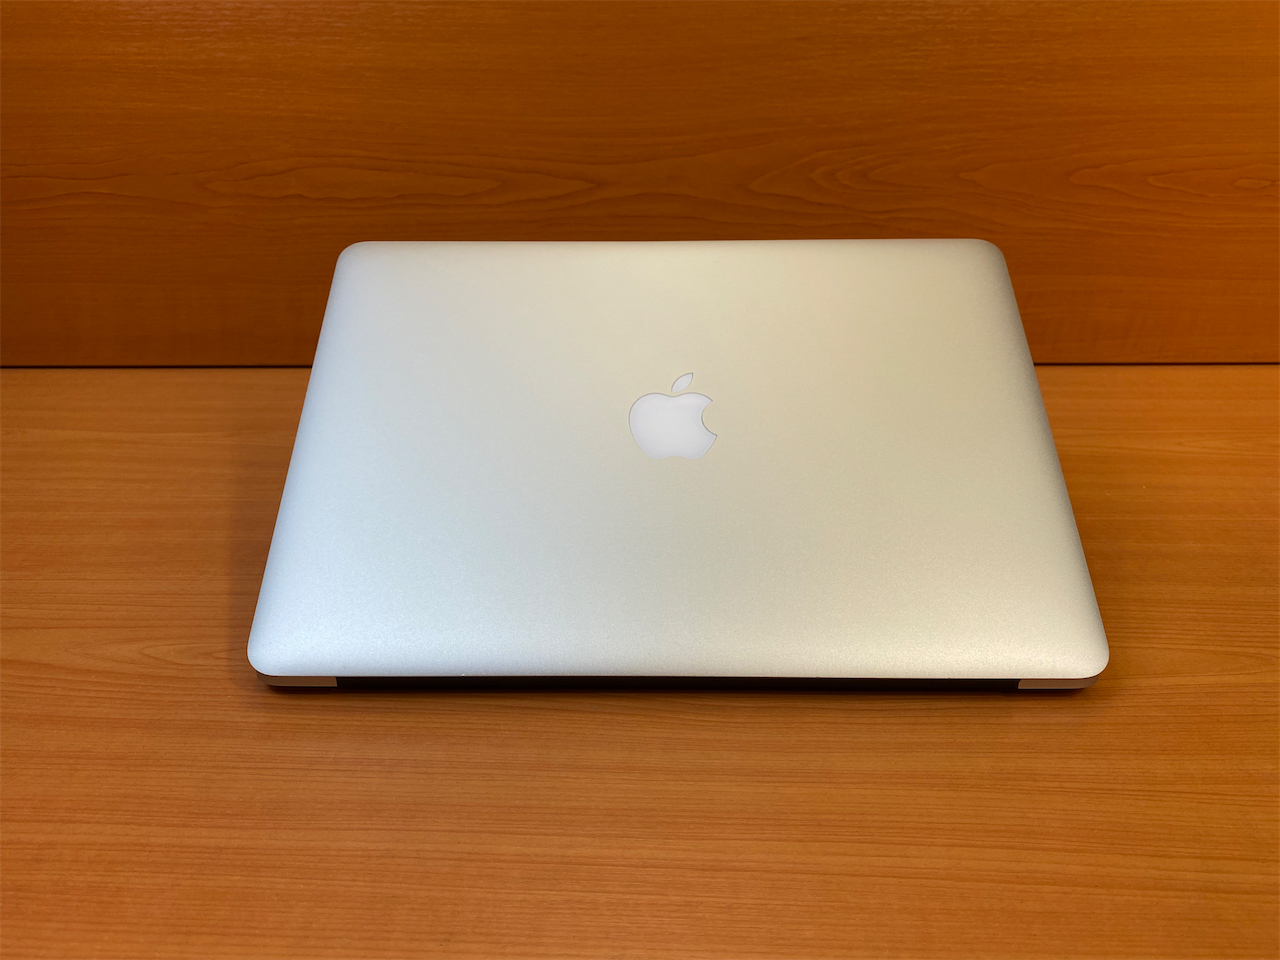 13 Apple MacBook Air BroadWell 2017 ID: 2194665